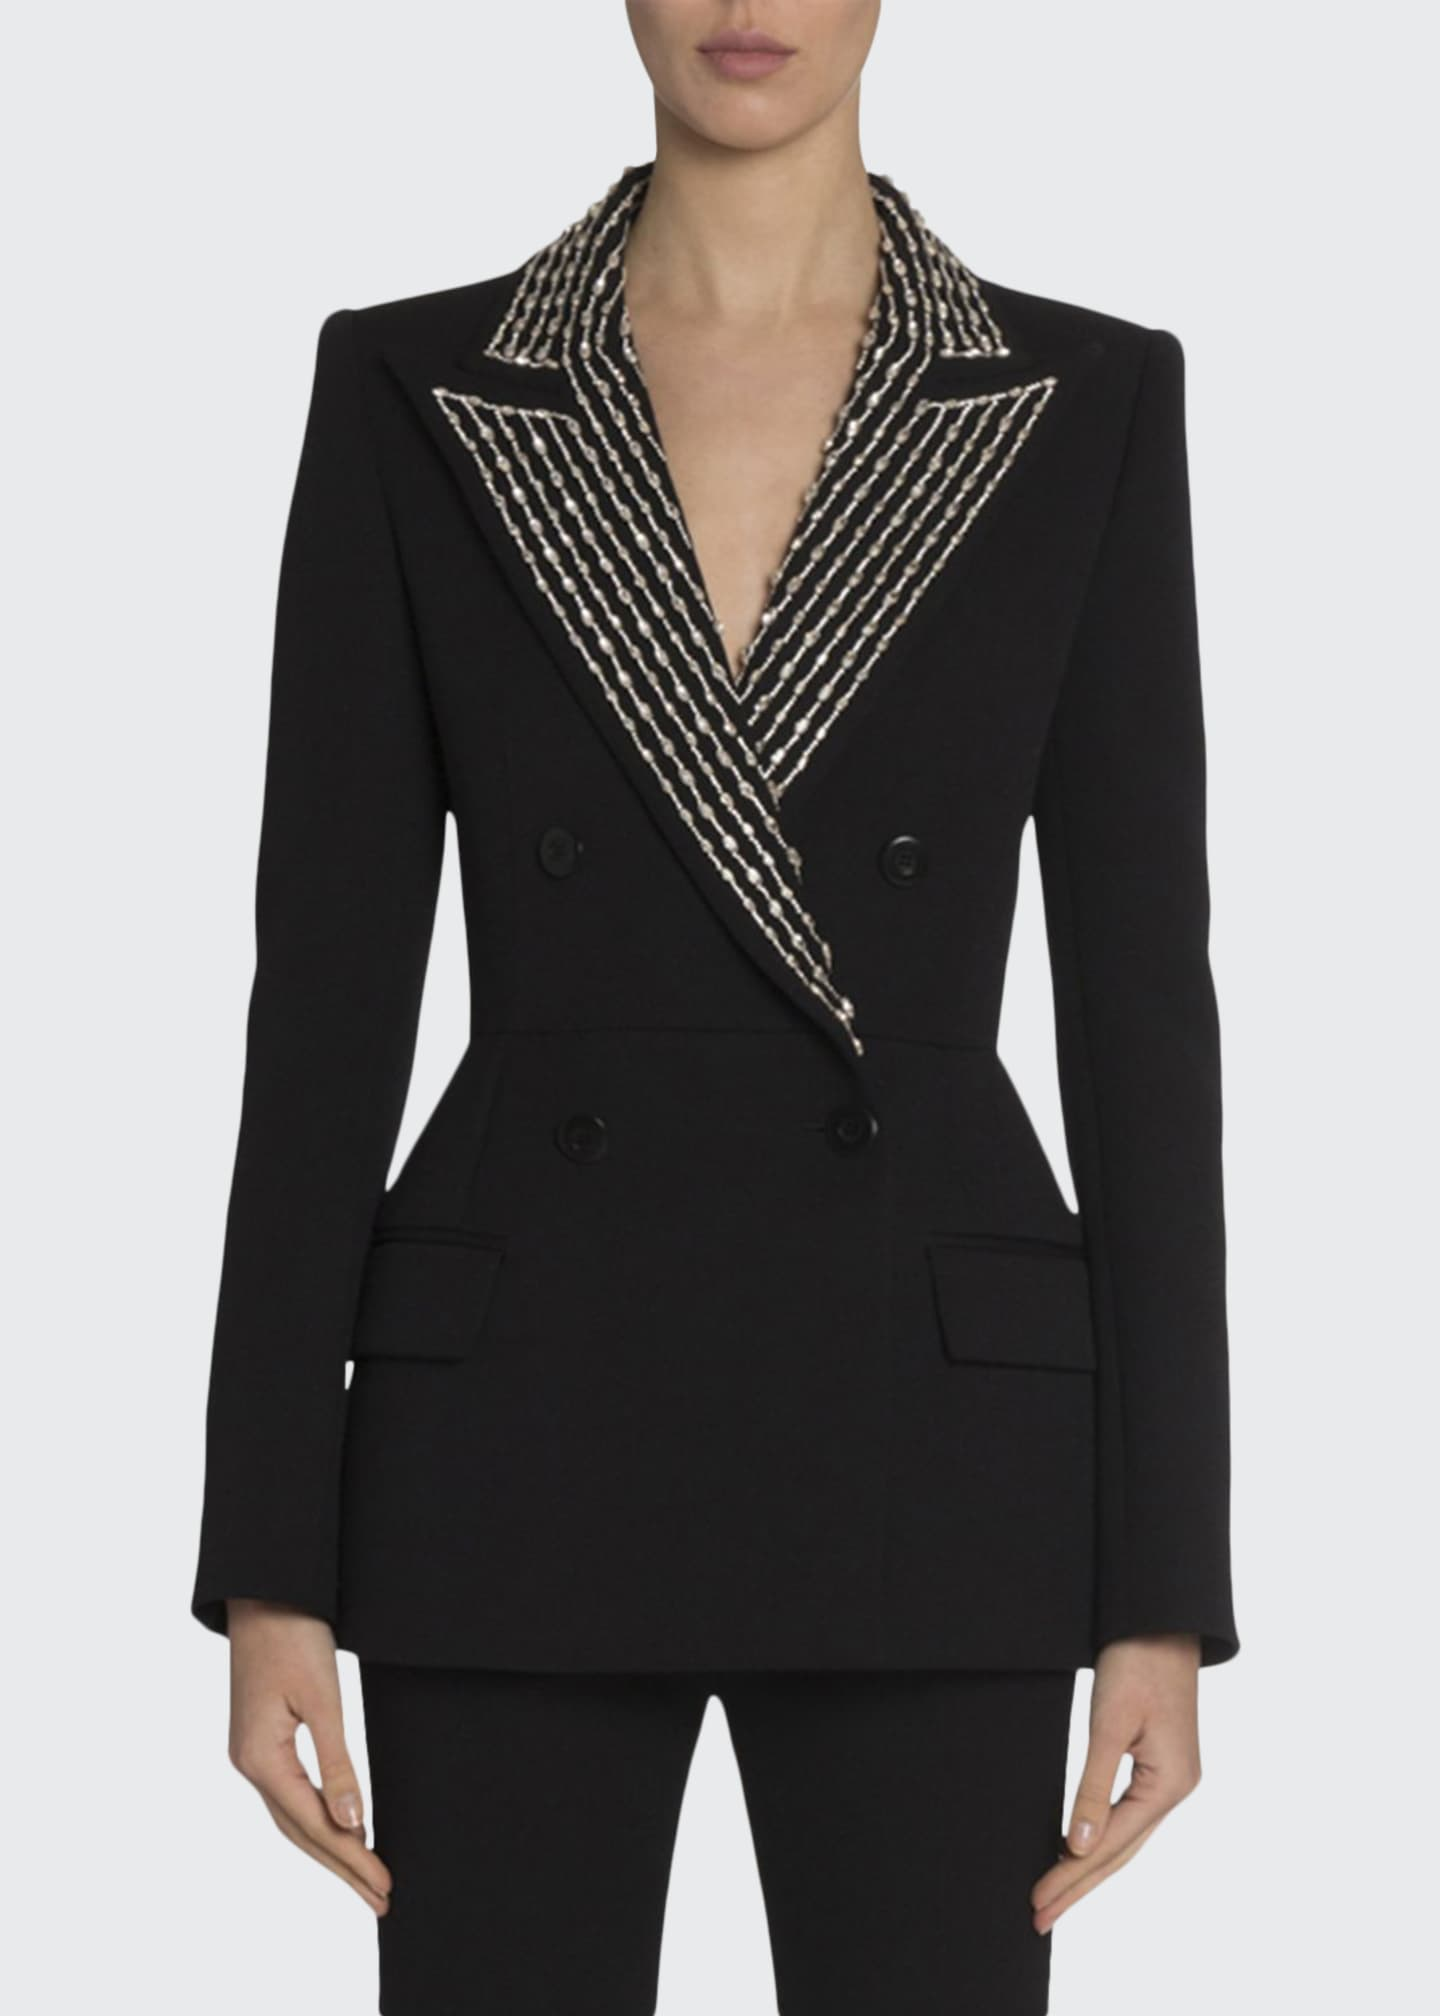 Givenchy Crystal-Lapel Blazer